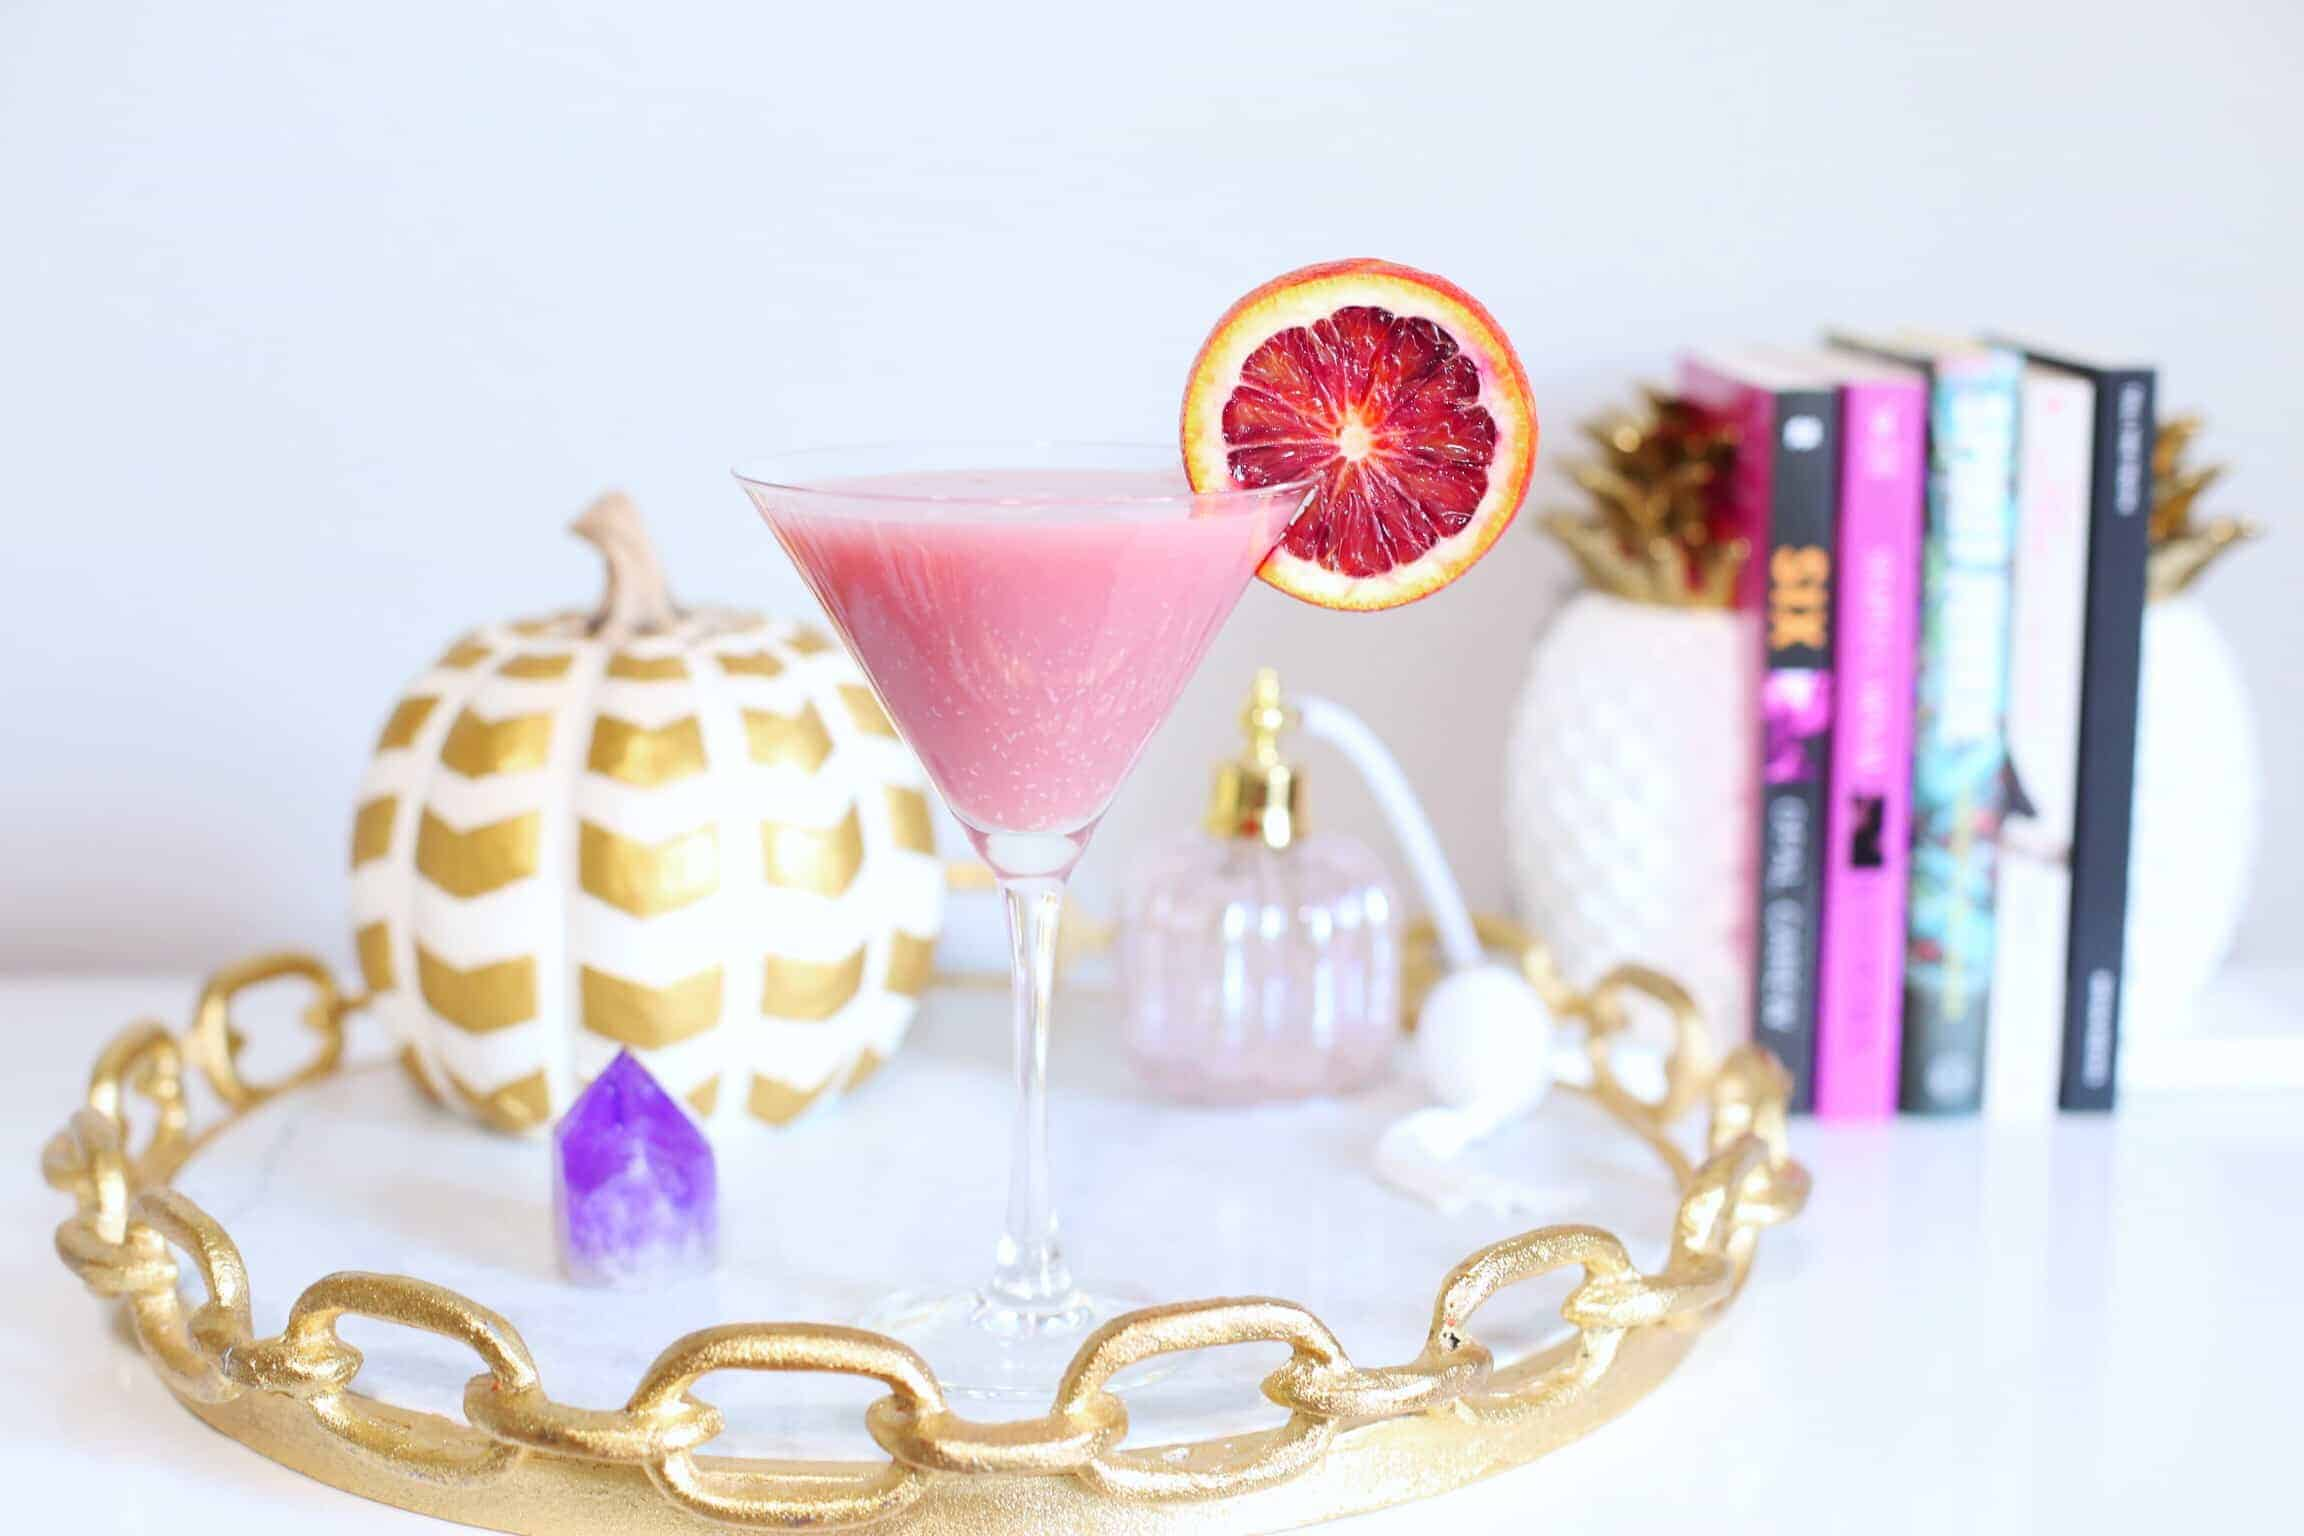 This Pink Pumpkin Martini is the perfect balance of tart & sweet and an amazing addition to a contemporary fall party.